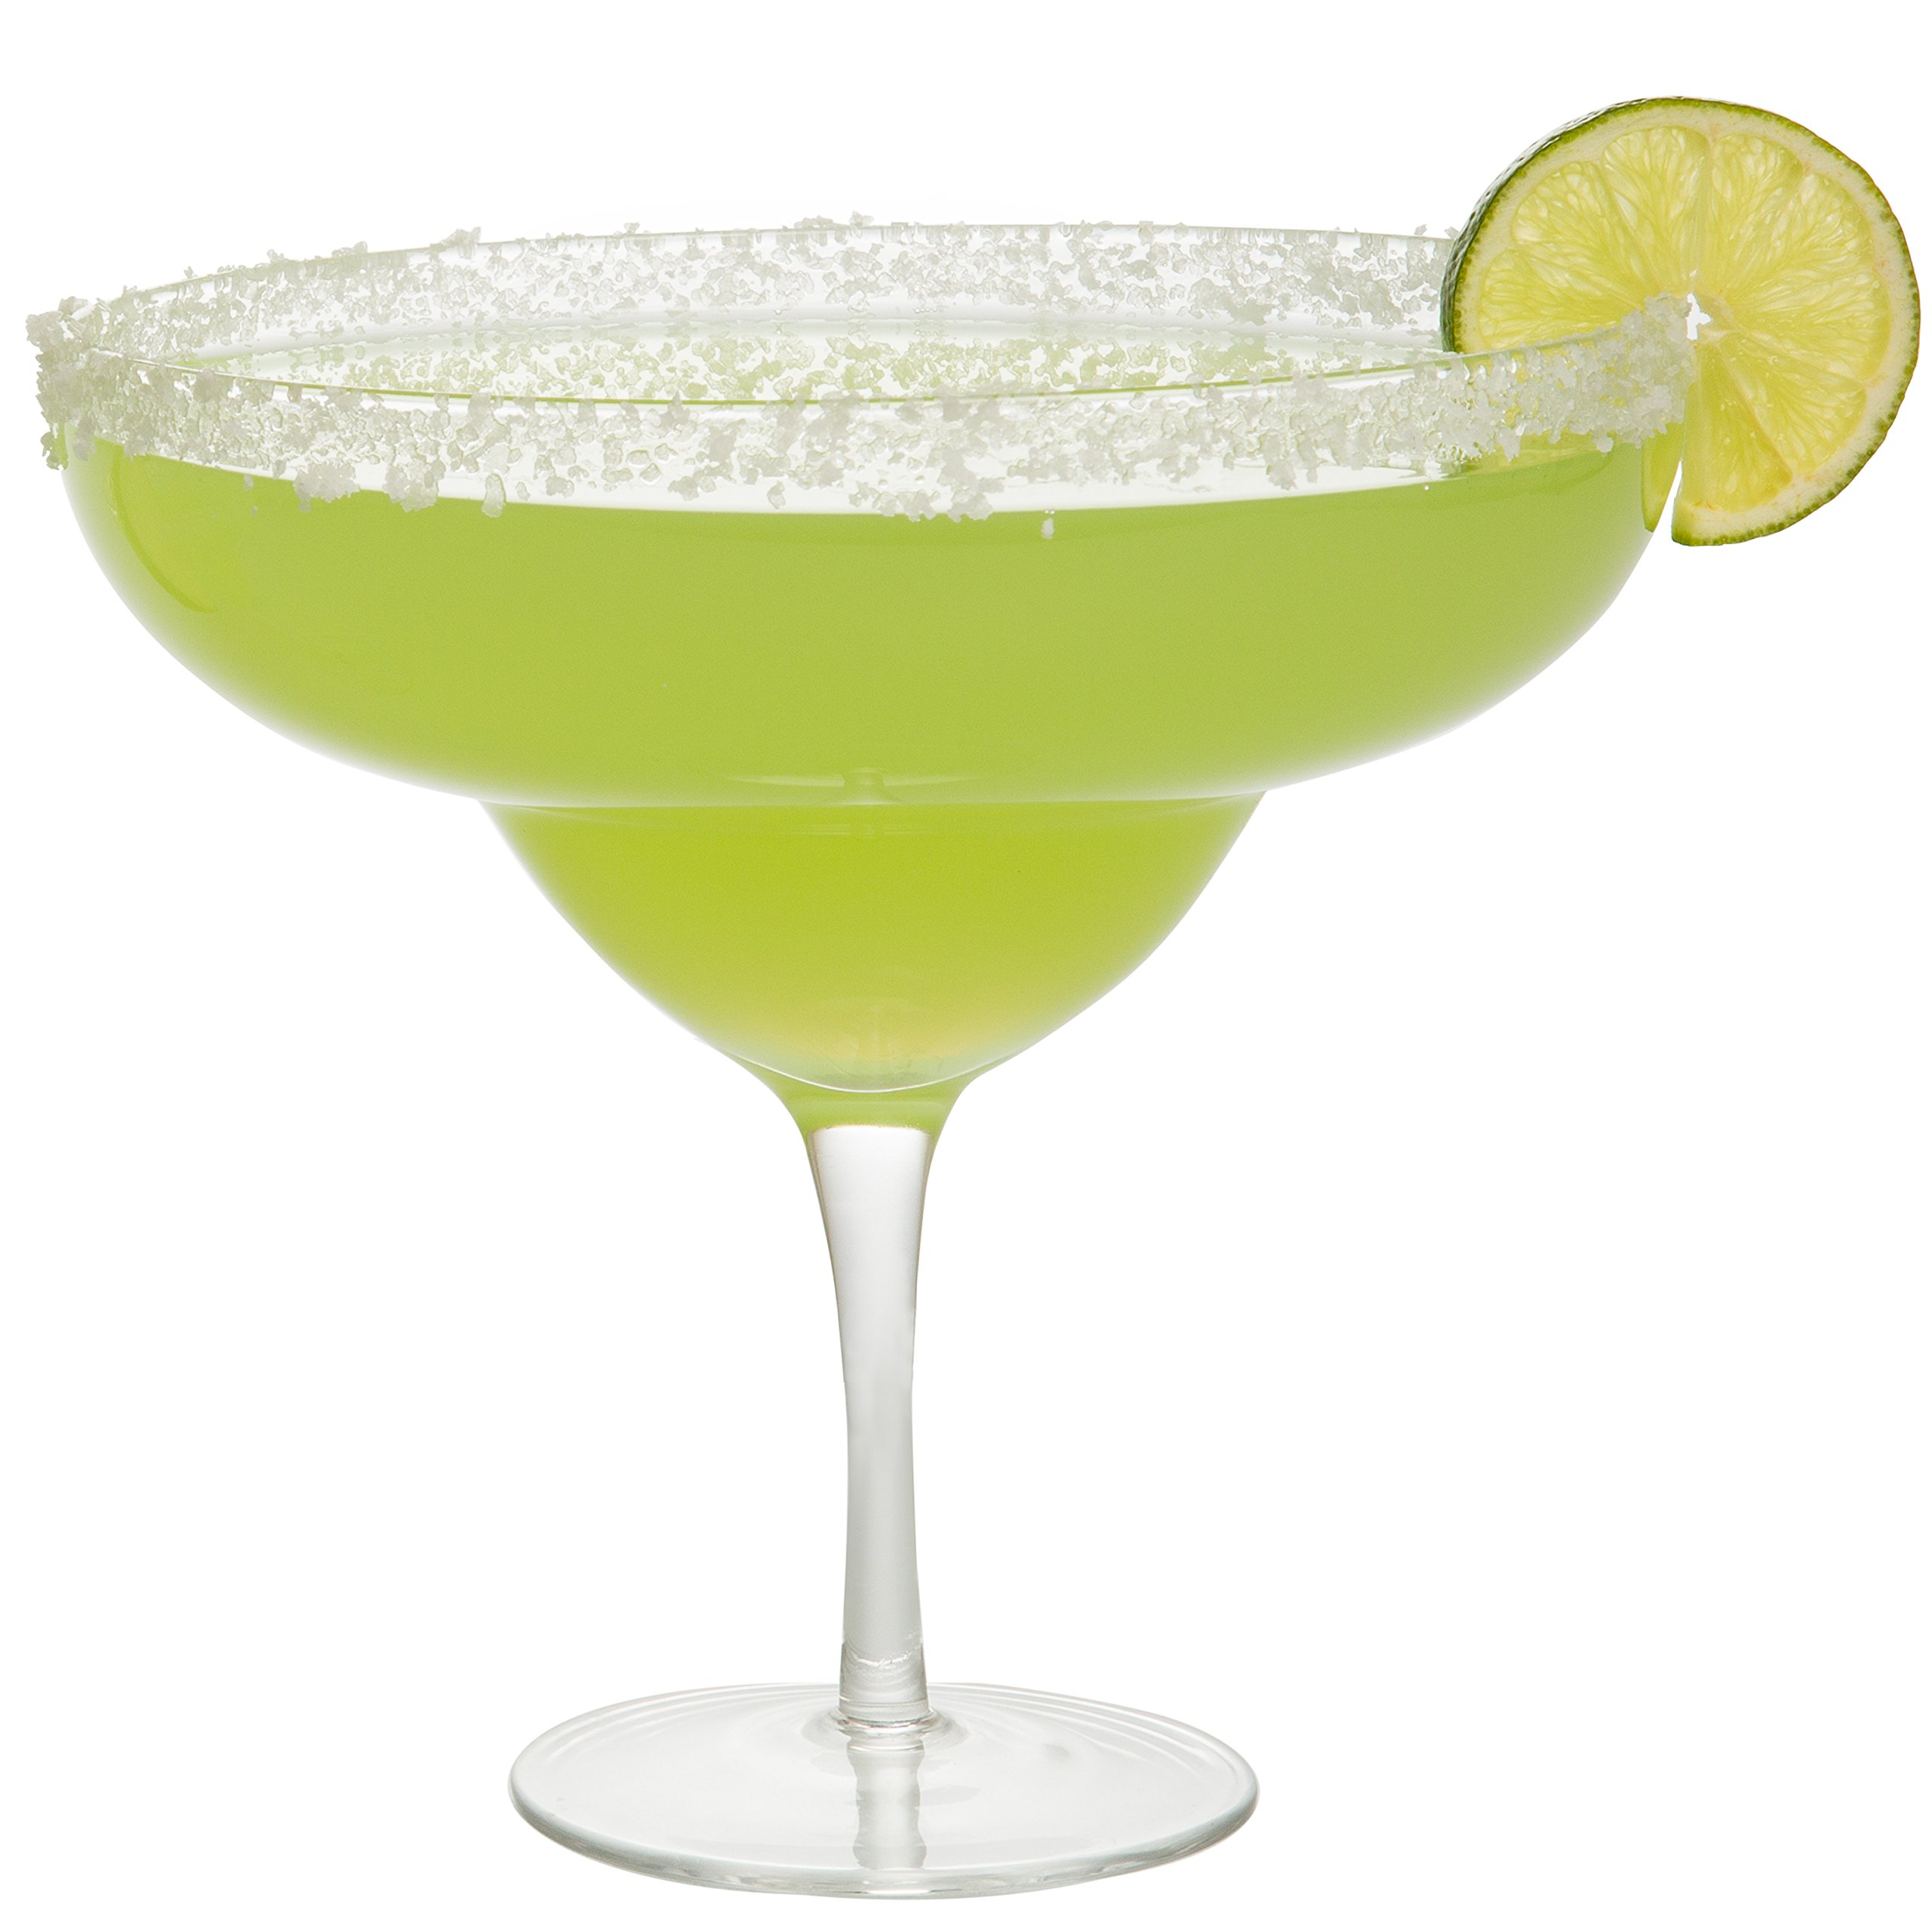 Extra Large Giant Cinco De Mayo Margarita Glass - 34oz - Fits about 3 typical margaritas! by Royal Lush (Image #4)